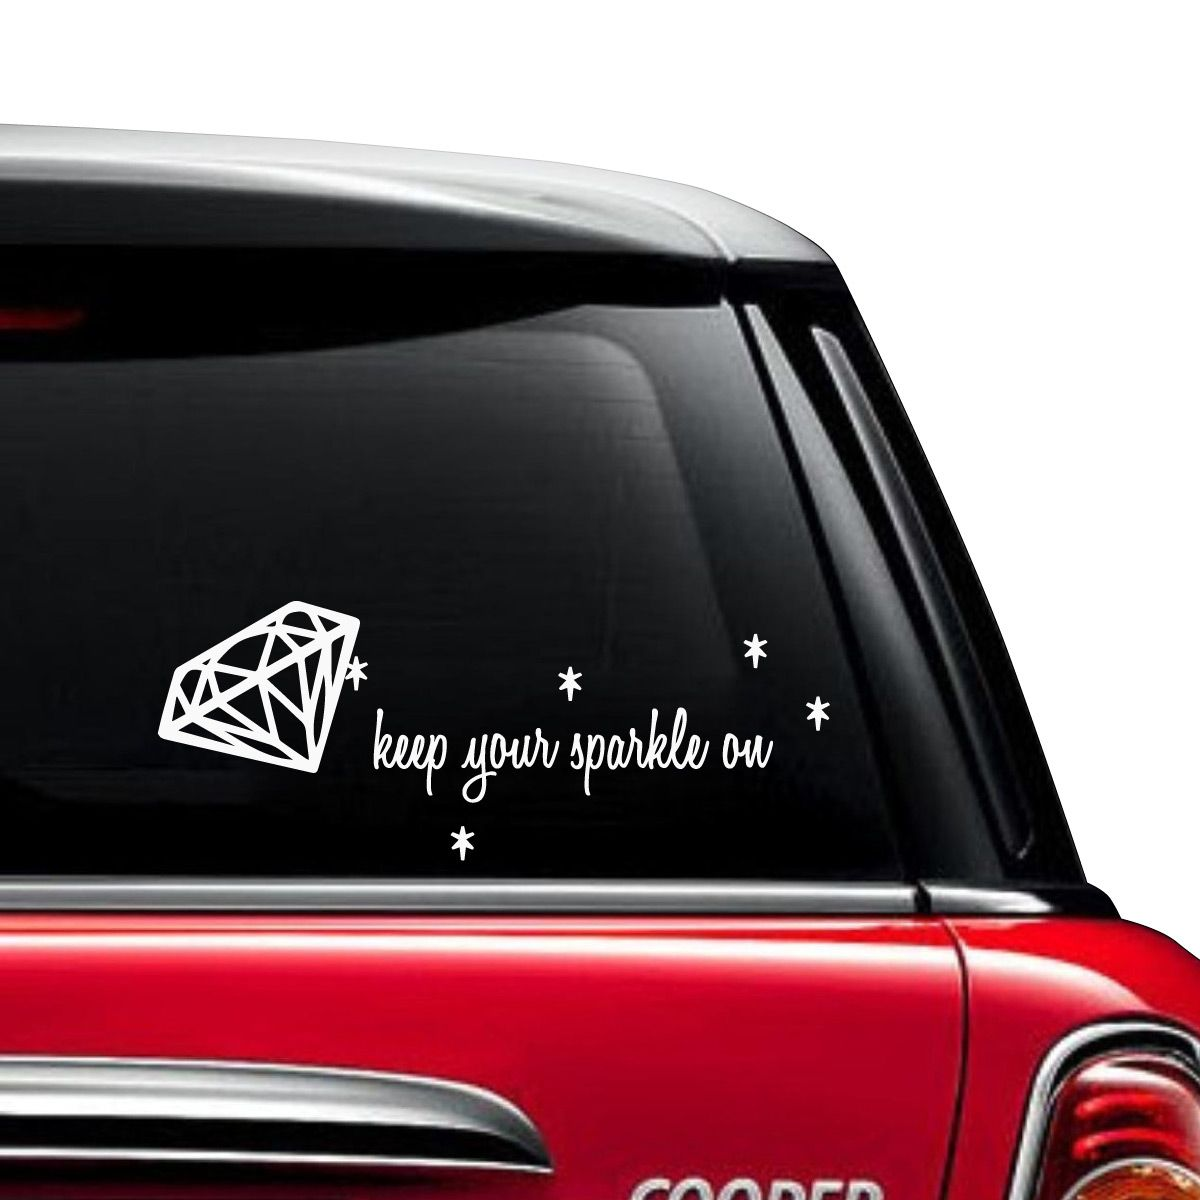 Keep Your Sparkle On Car Decal Girly Car Decals Car Decals Car [ 1200 x 1200 Pixel ]